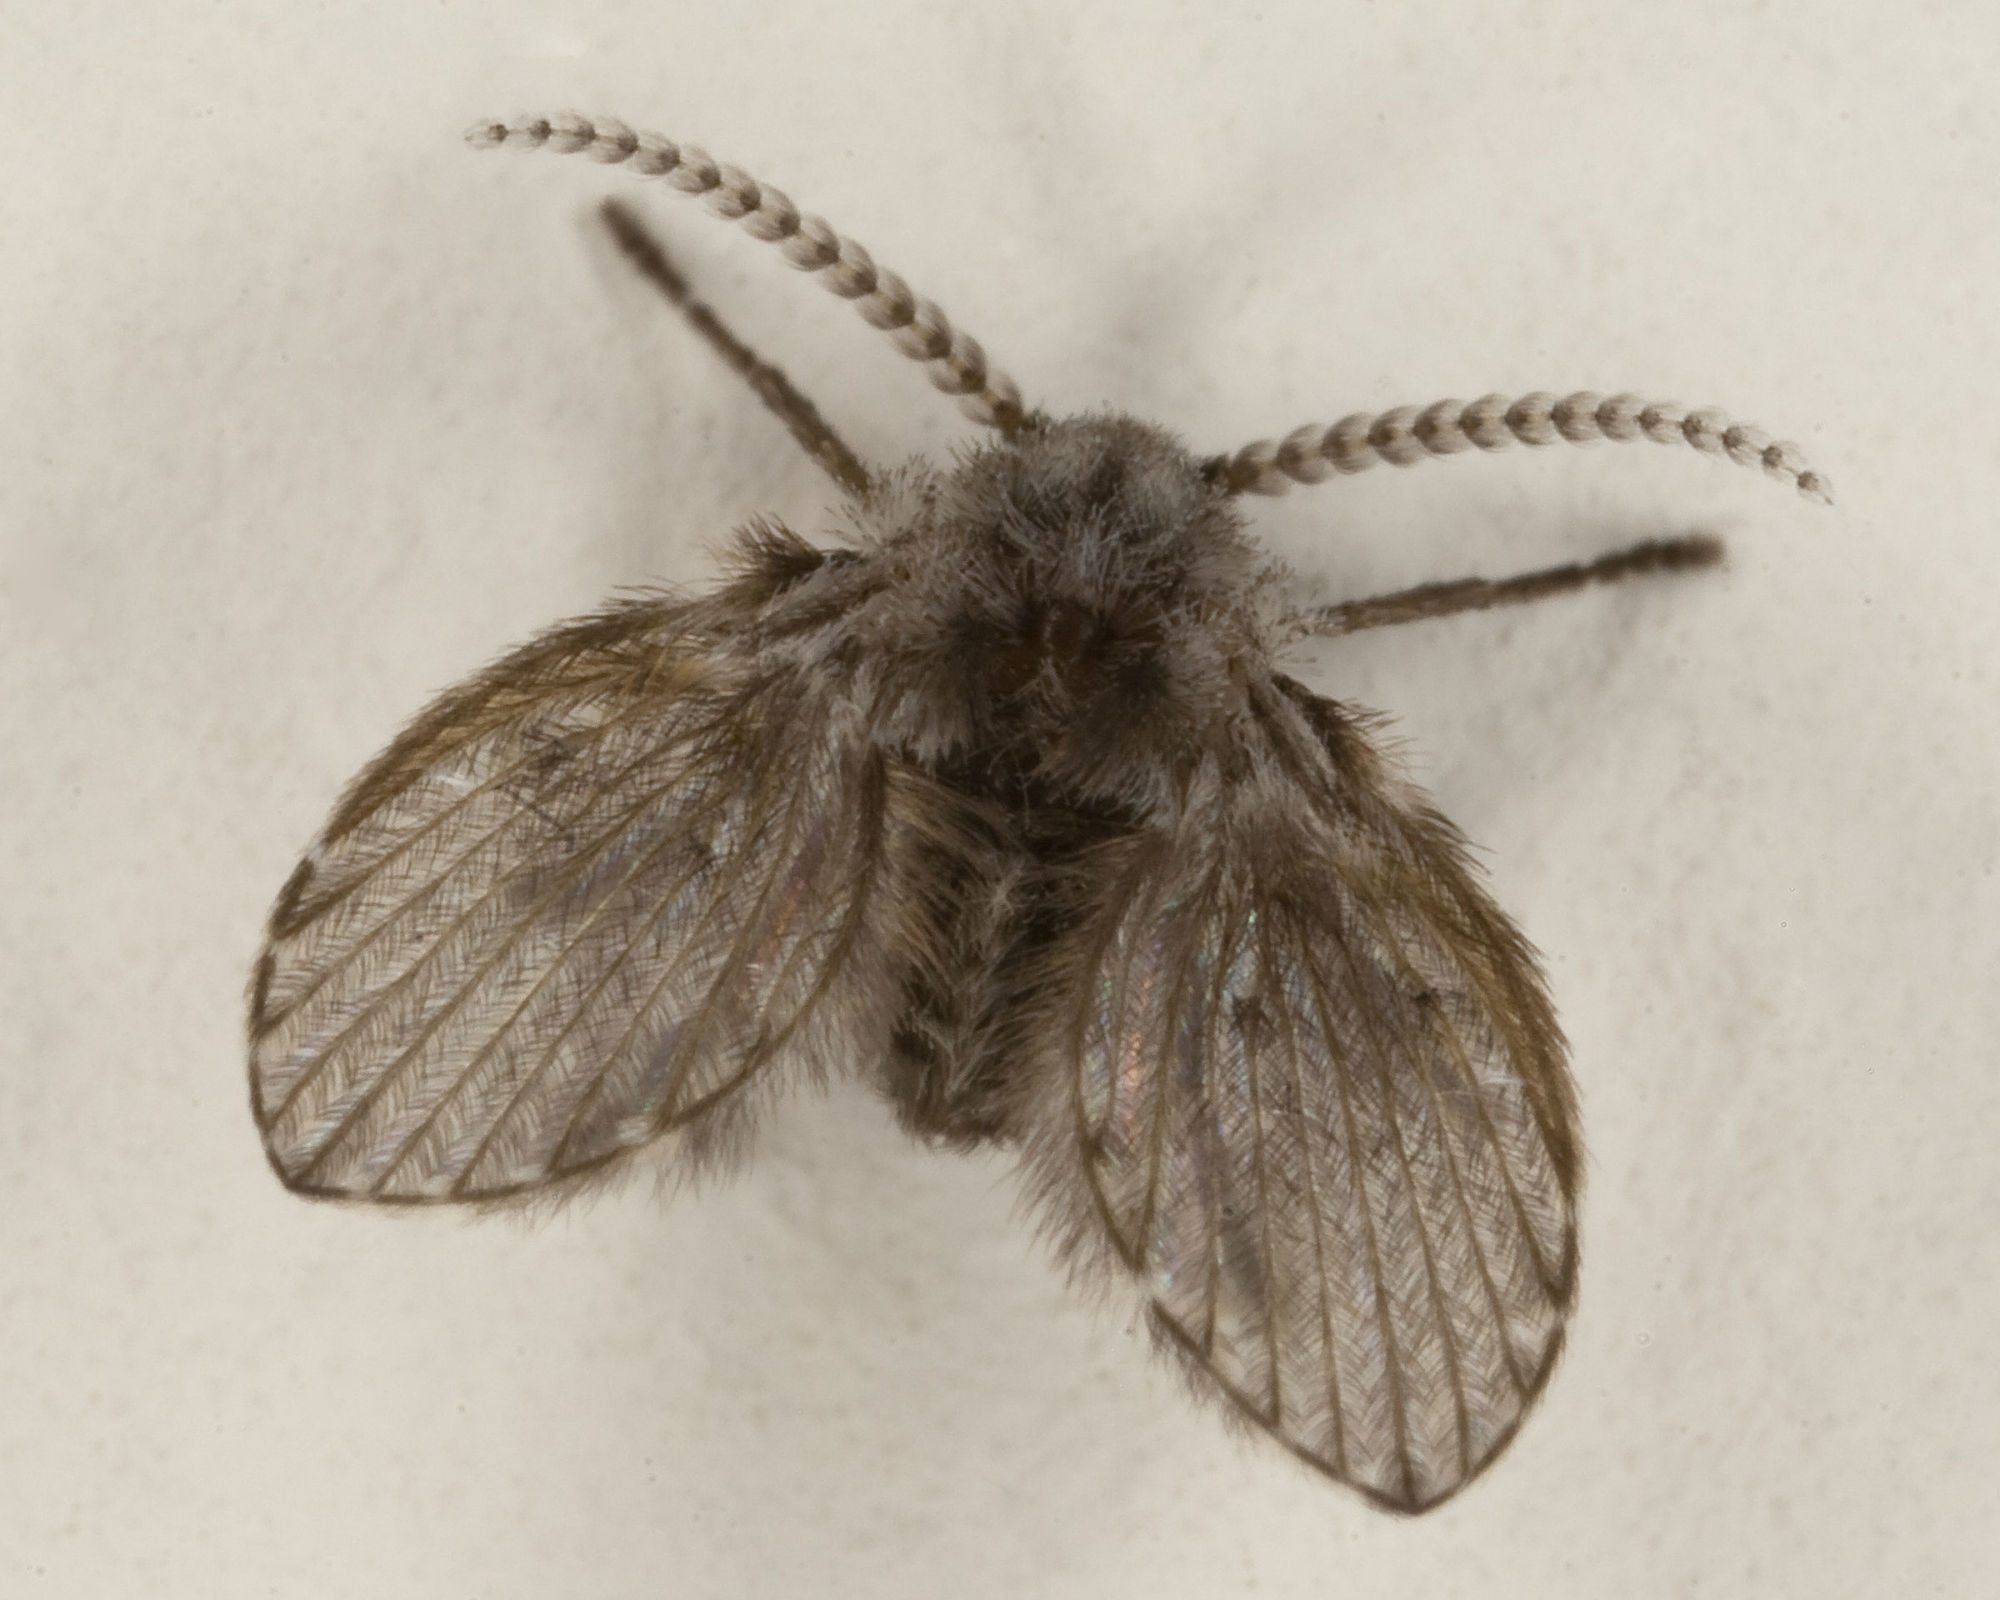 File source: http://commons.wikimedia.org/wiki/File:Clogmia_Albipunctata_or_moth_fly.jpg